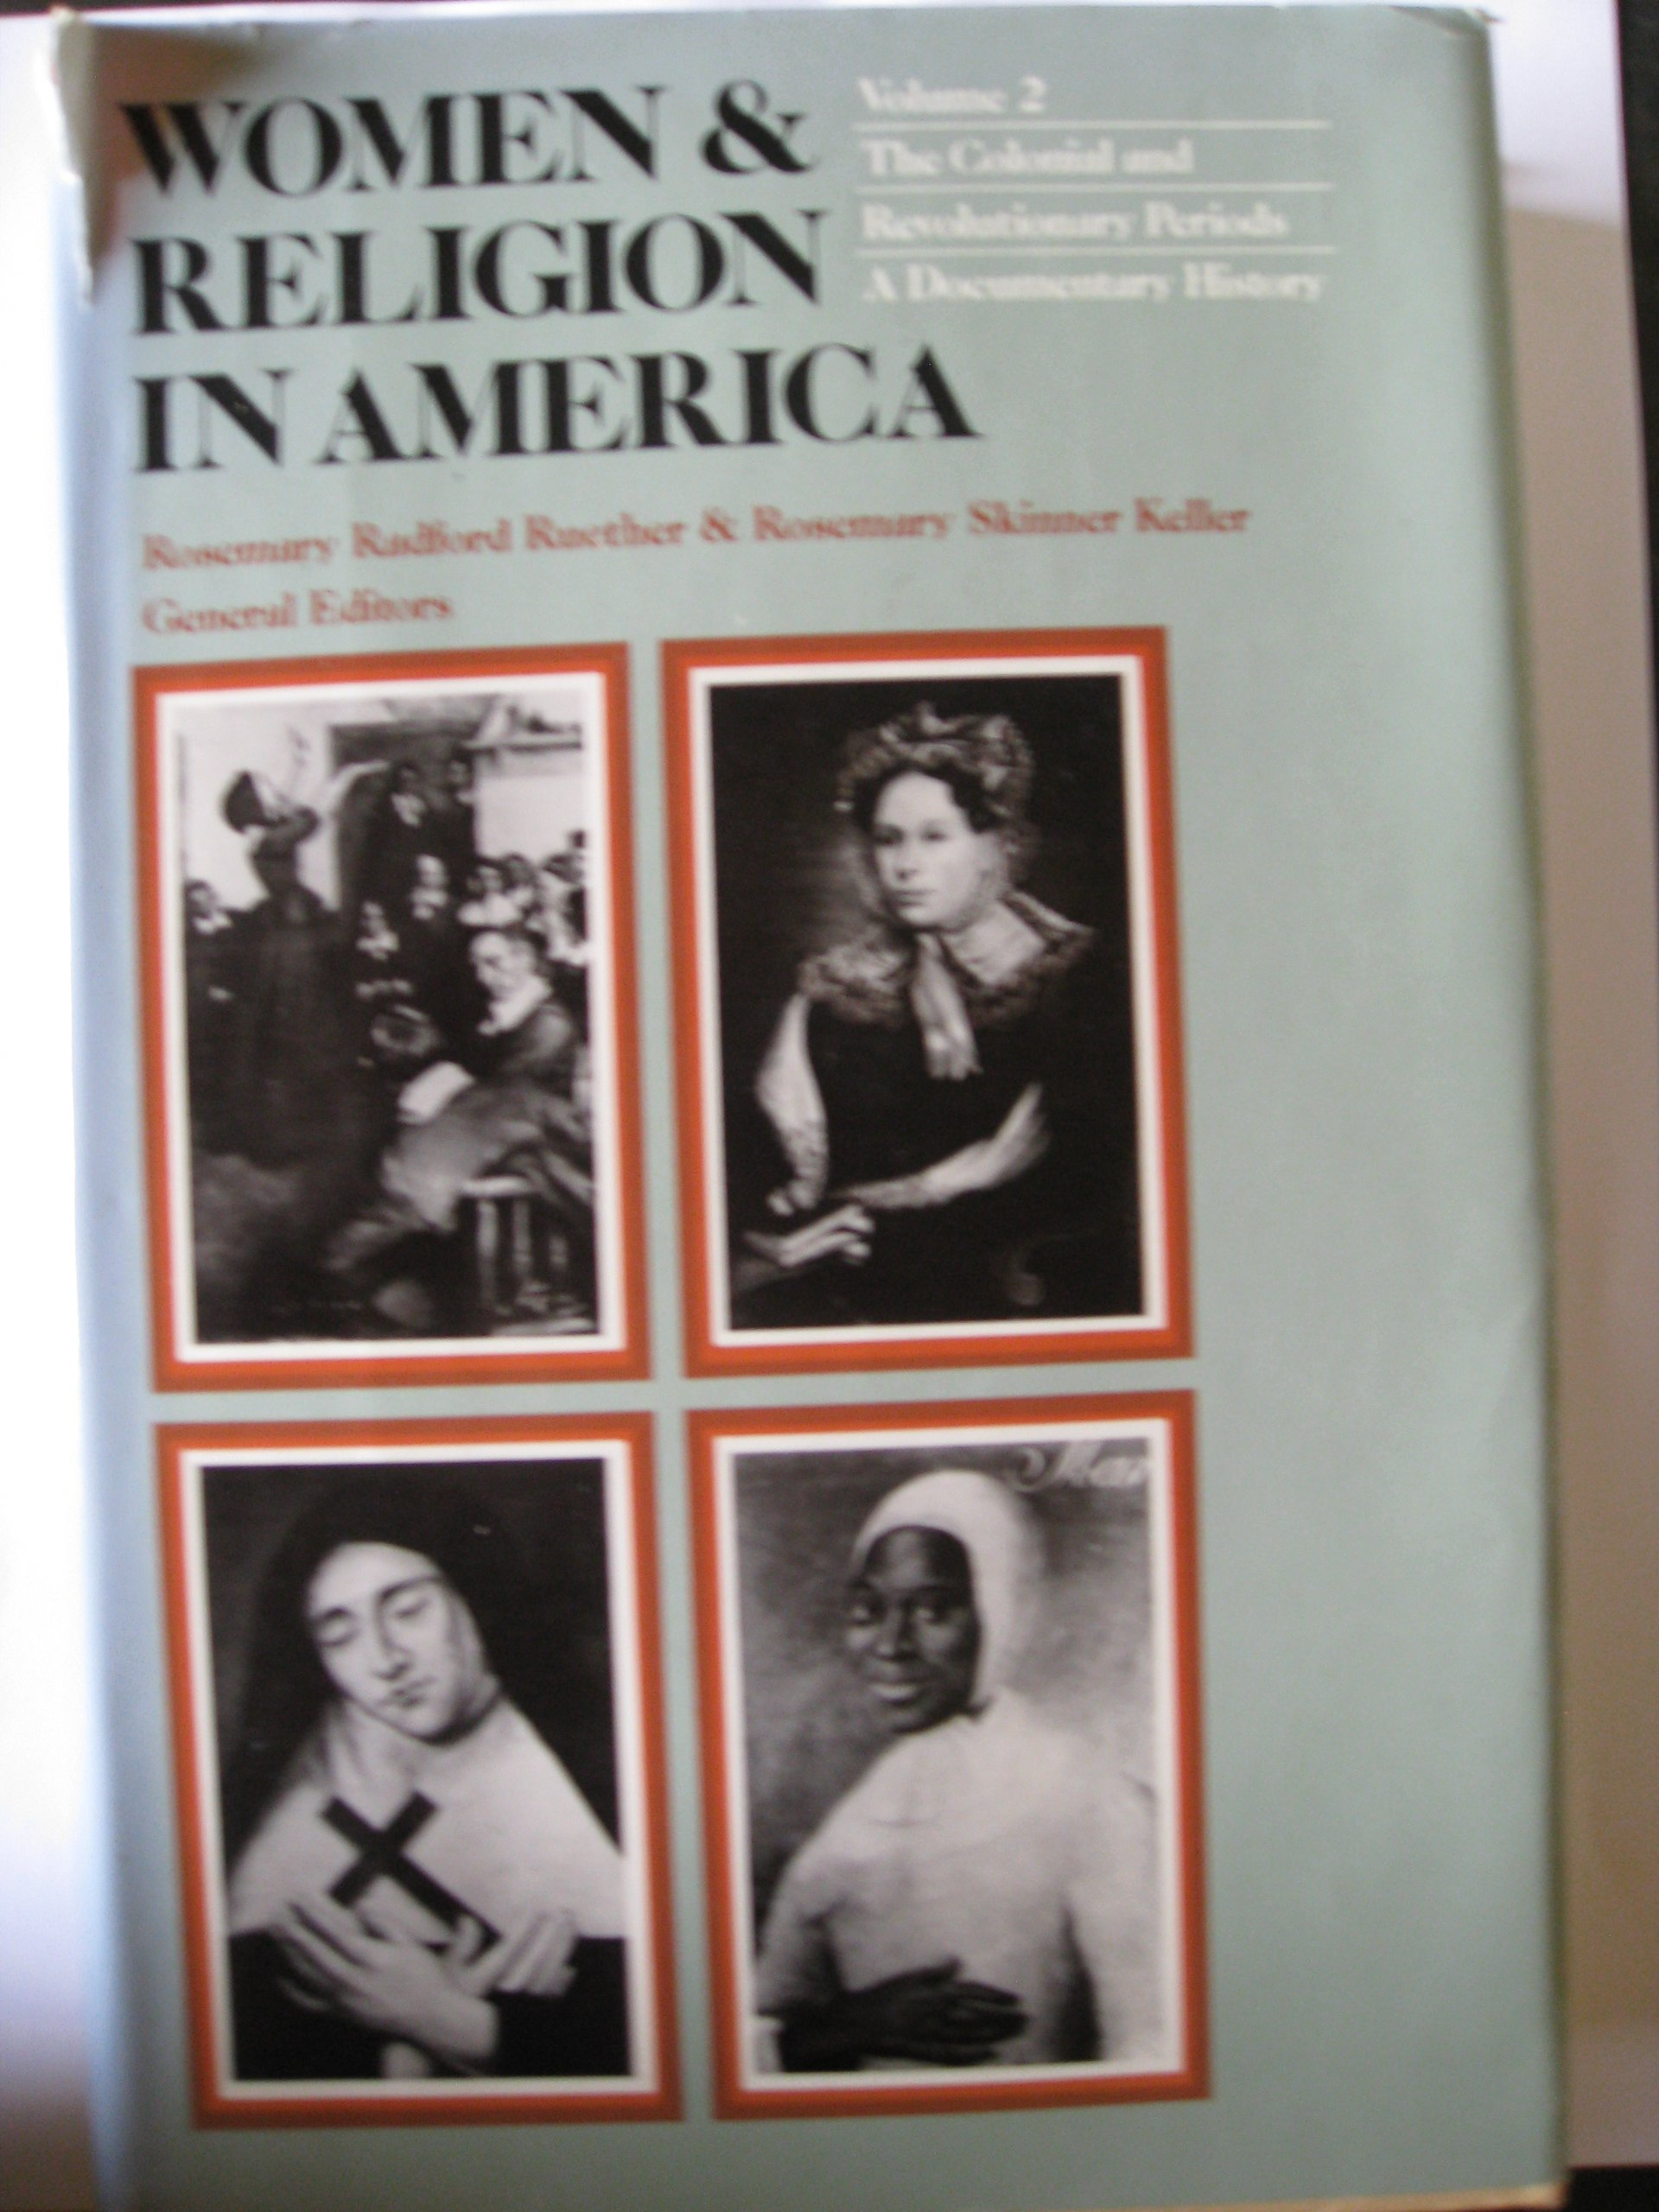 Image for Women and Religion in America: The Colonial and Revolutionary Period (Women & Religion in America)